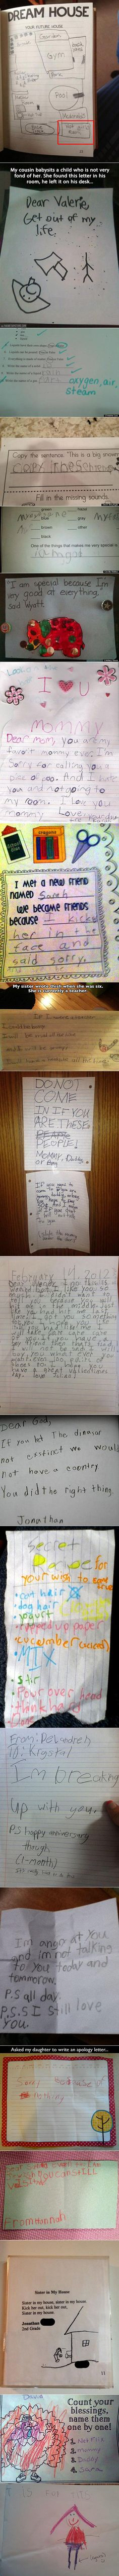 We have rounded up some funny and unusual, yet real, notes from geeky kids. Ha this is hilarious!